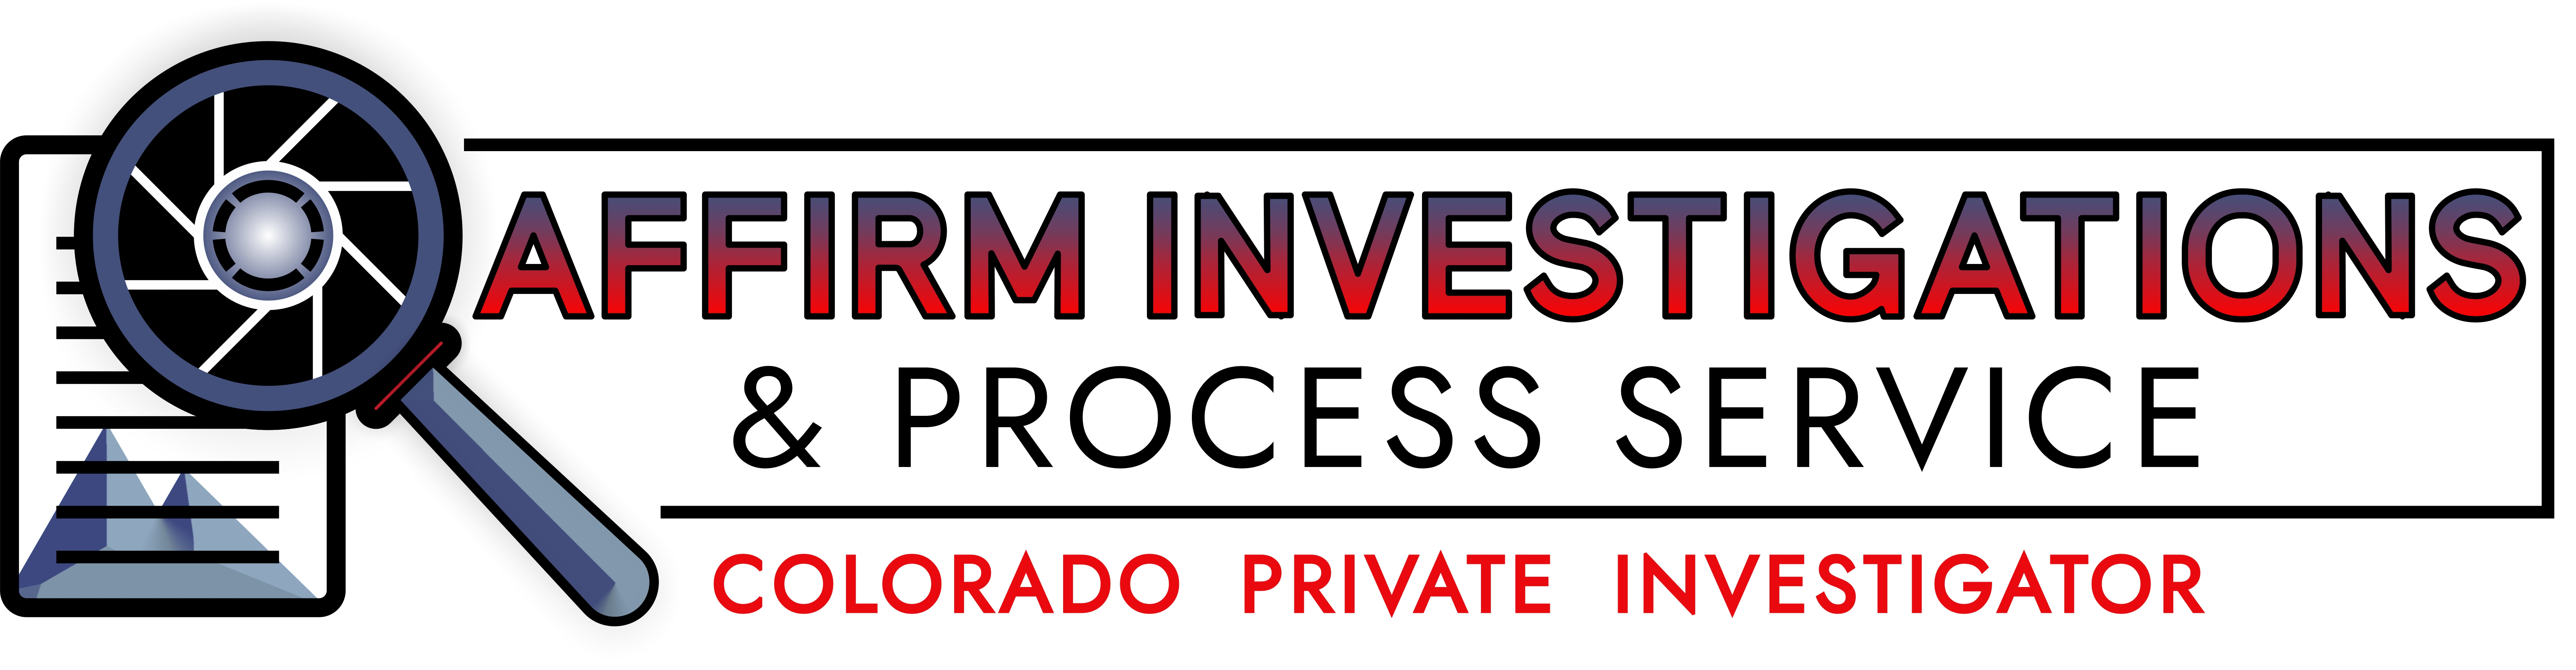 Greeley Private Investigator | Denver Private Investigator